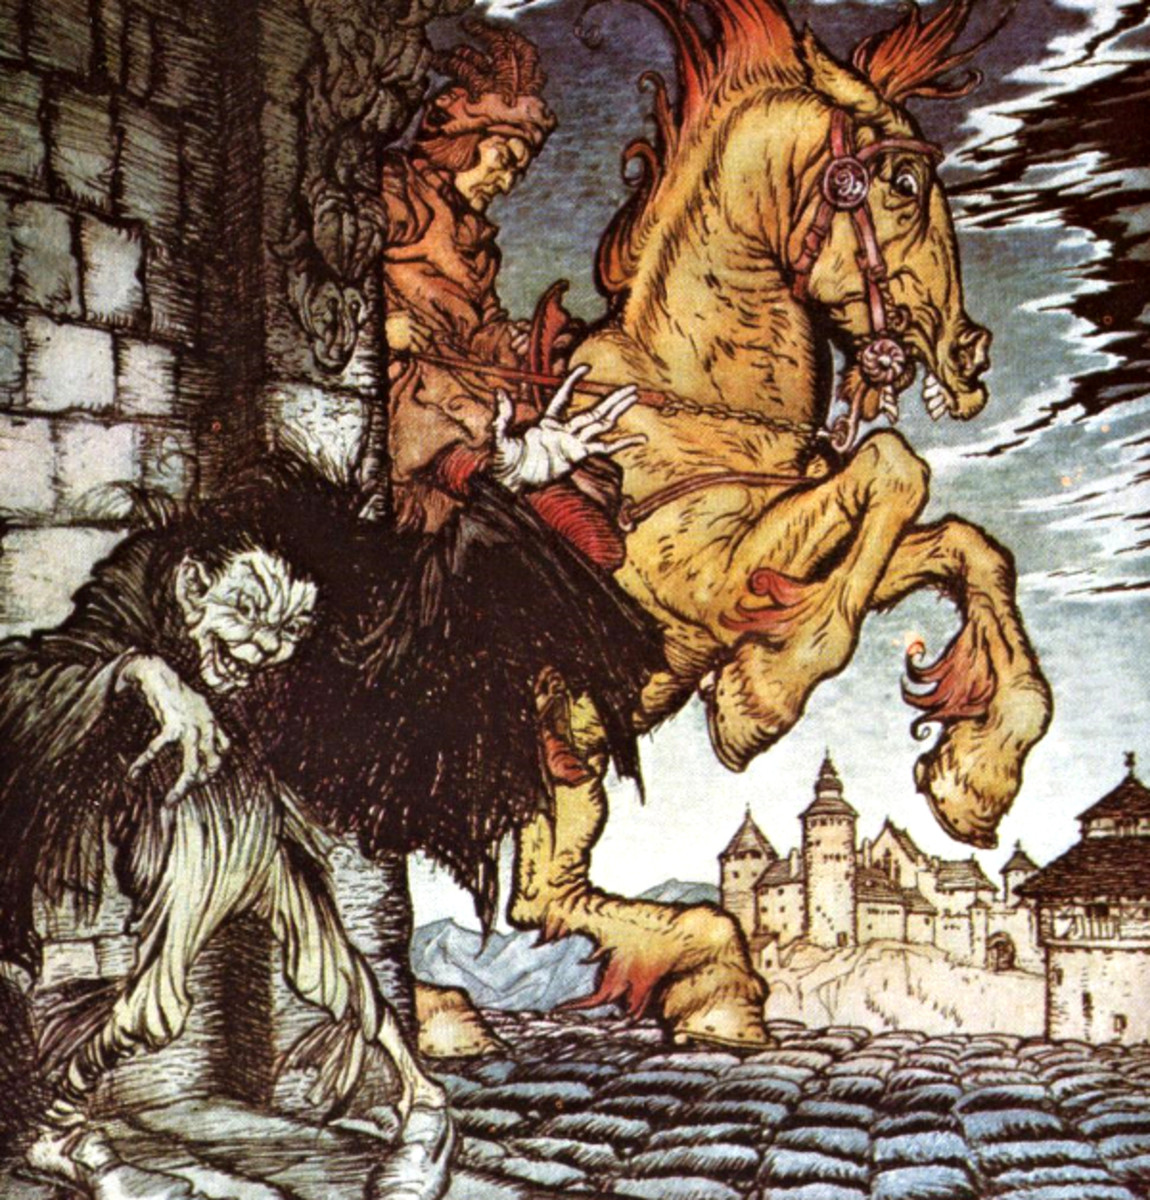 "Here we show a portion of 'Metzengerstein' - a design by Arthur Rackham from his suite of illustration published in ""Poe's Tales of Mystery and Imagination"" (1935)."